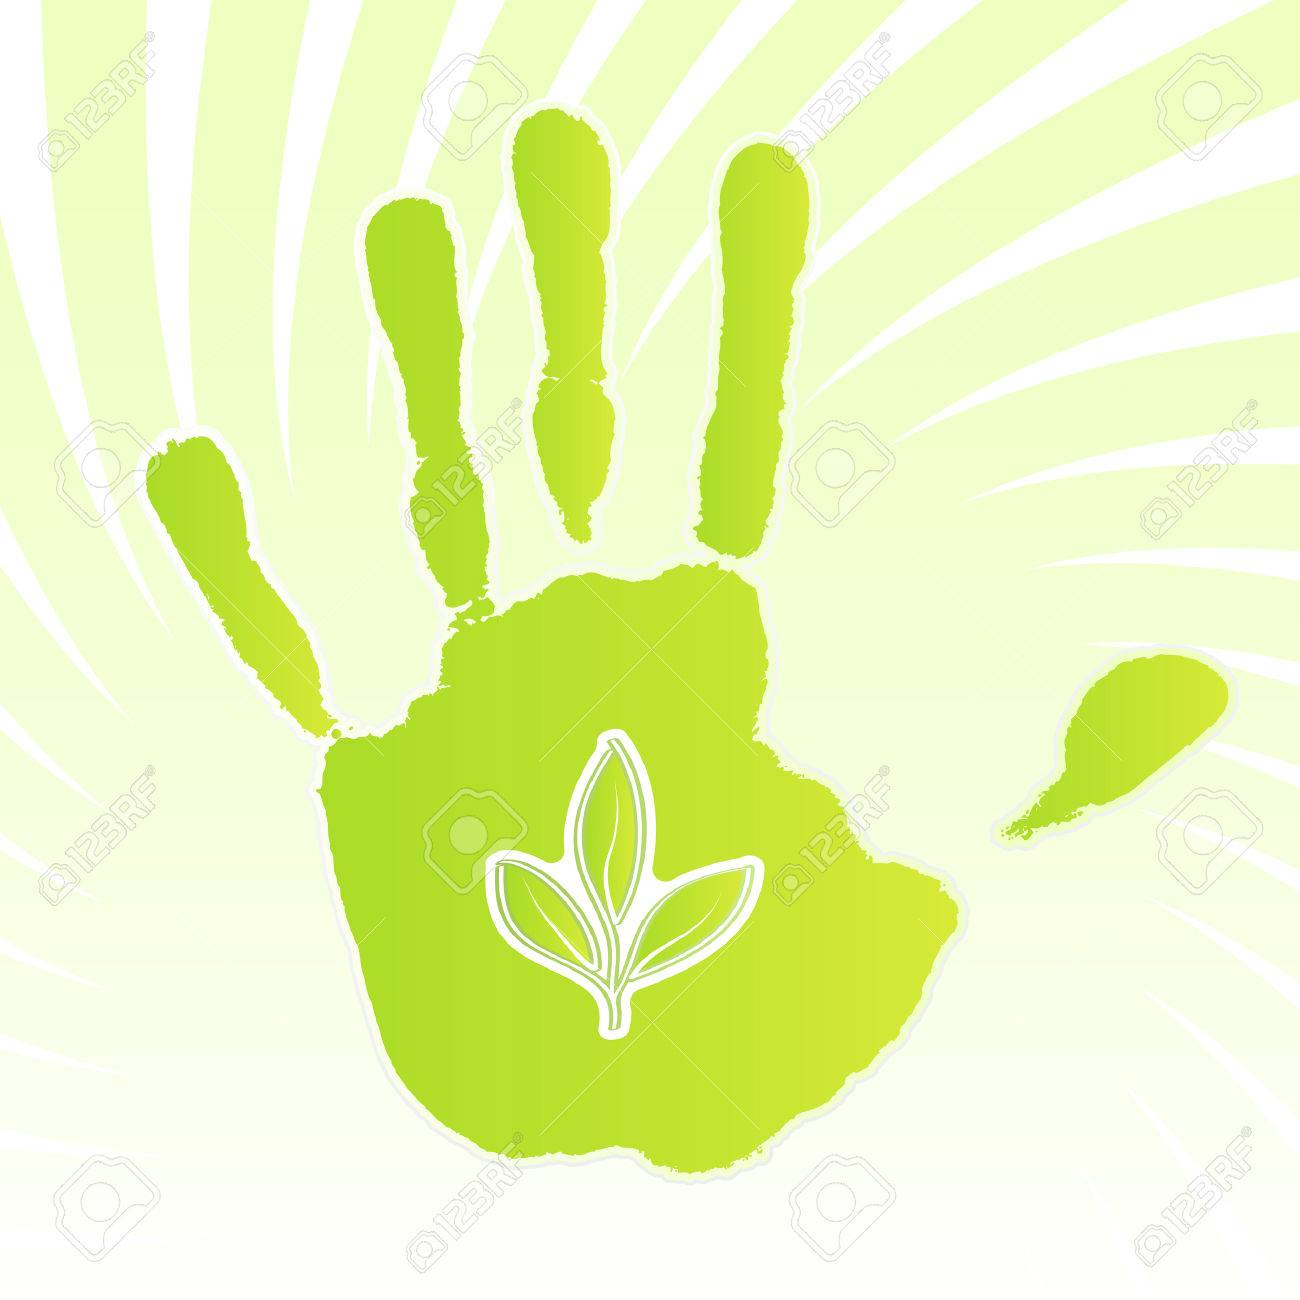 Vector illustration of a green ecology design handprint with swirly background and leaf icon. - 4045918